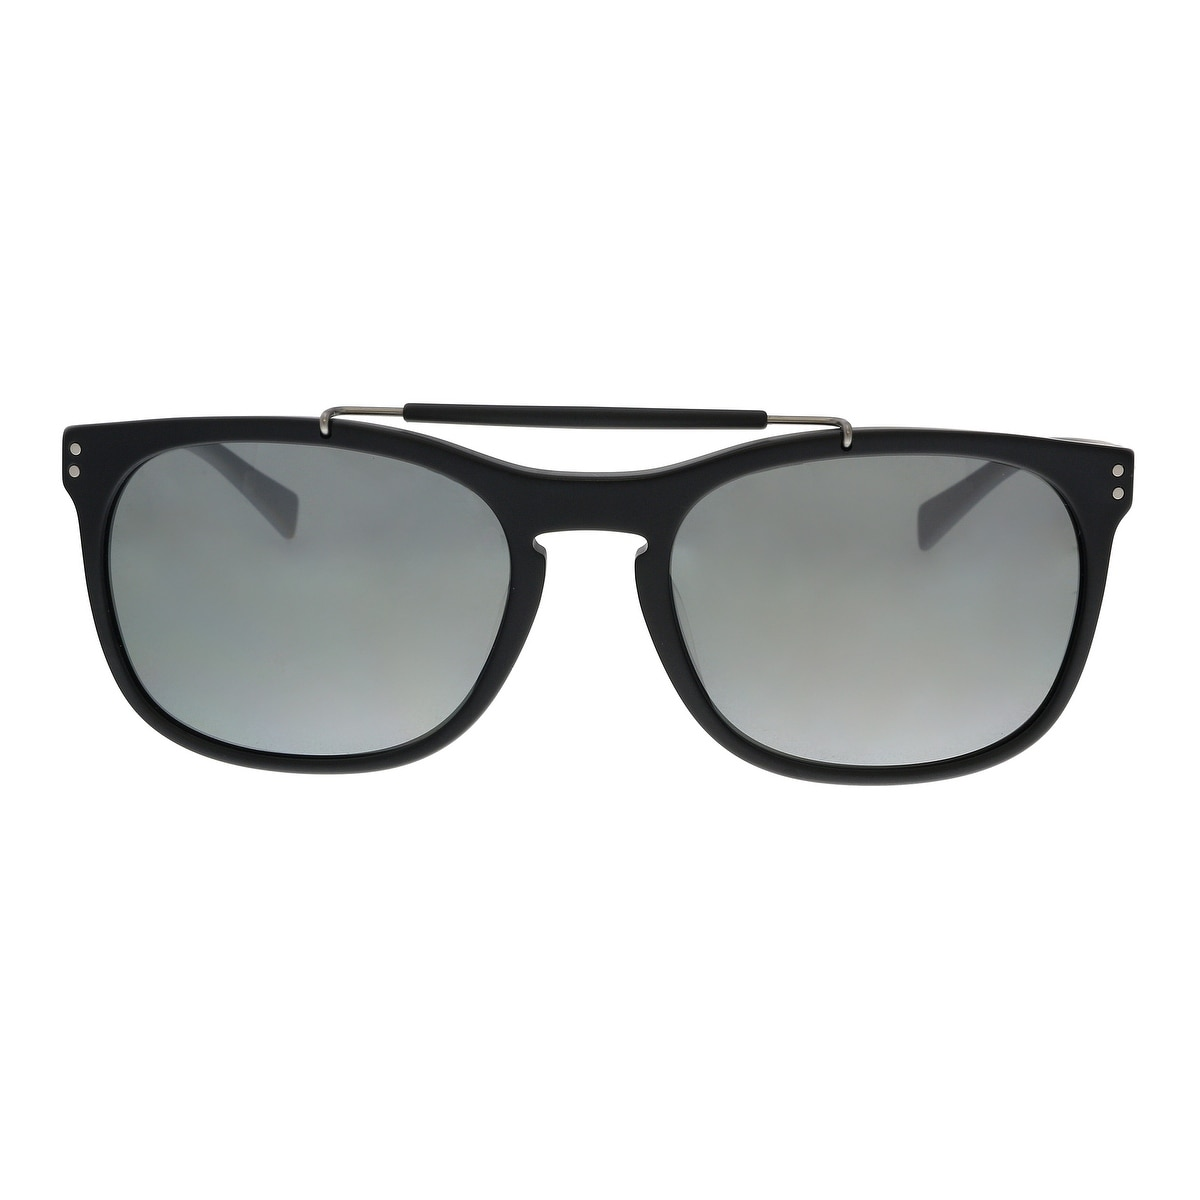 91eccebe4b Shop Burberry BE4244 34646G Matte Black Rectangular Sunglasses - No Size -  Free Shipping Today - Overstock - 24081514